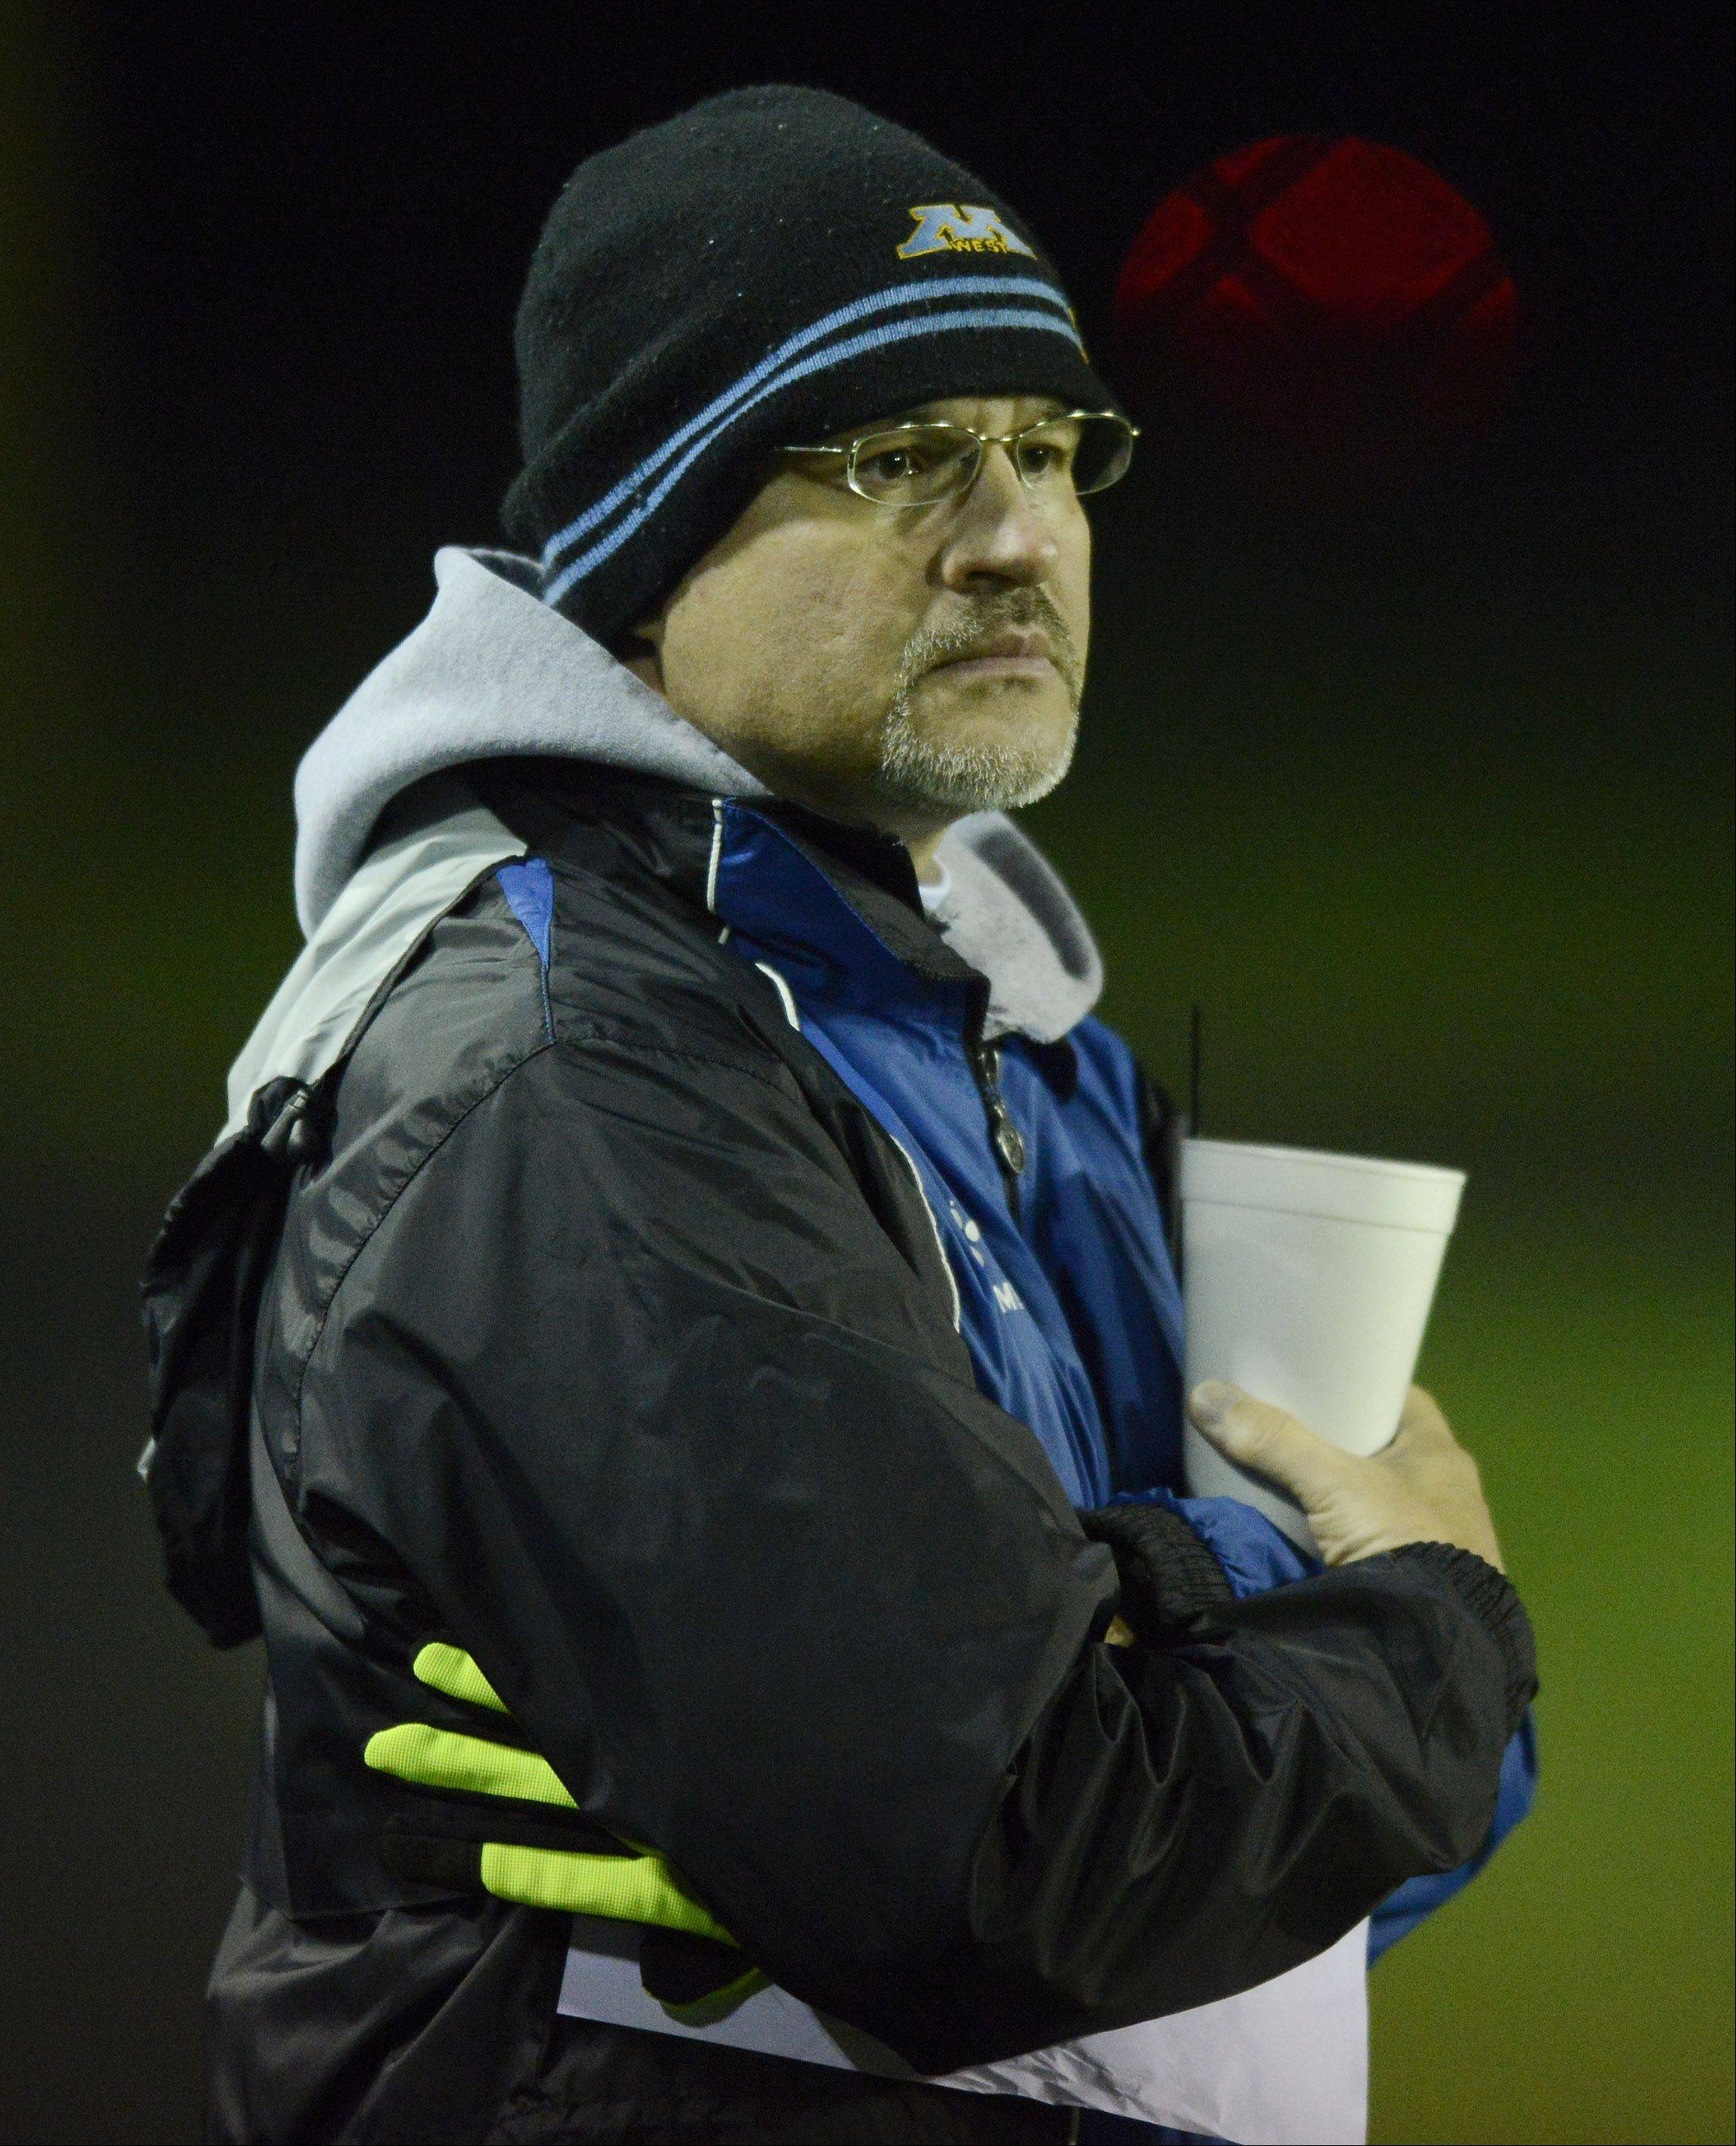 Maine West boys soccer coach Alan Matan watches the action on the field during Wednesday's soccer game in Des Plaines.